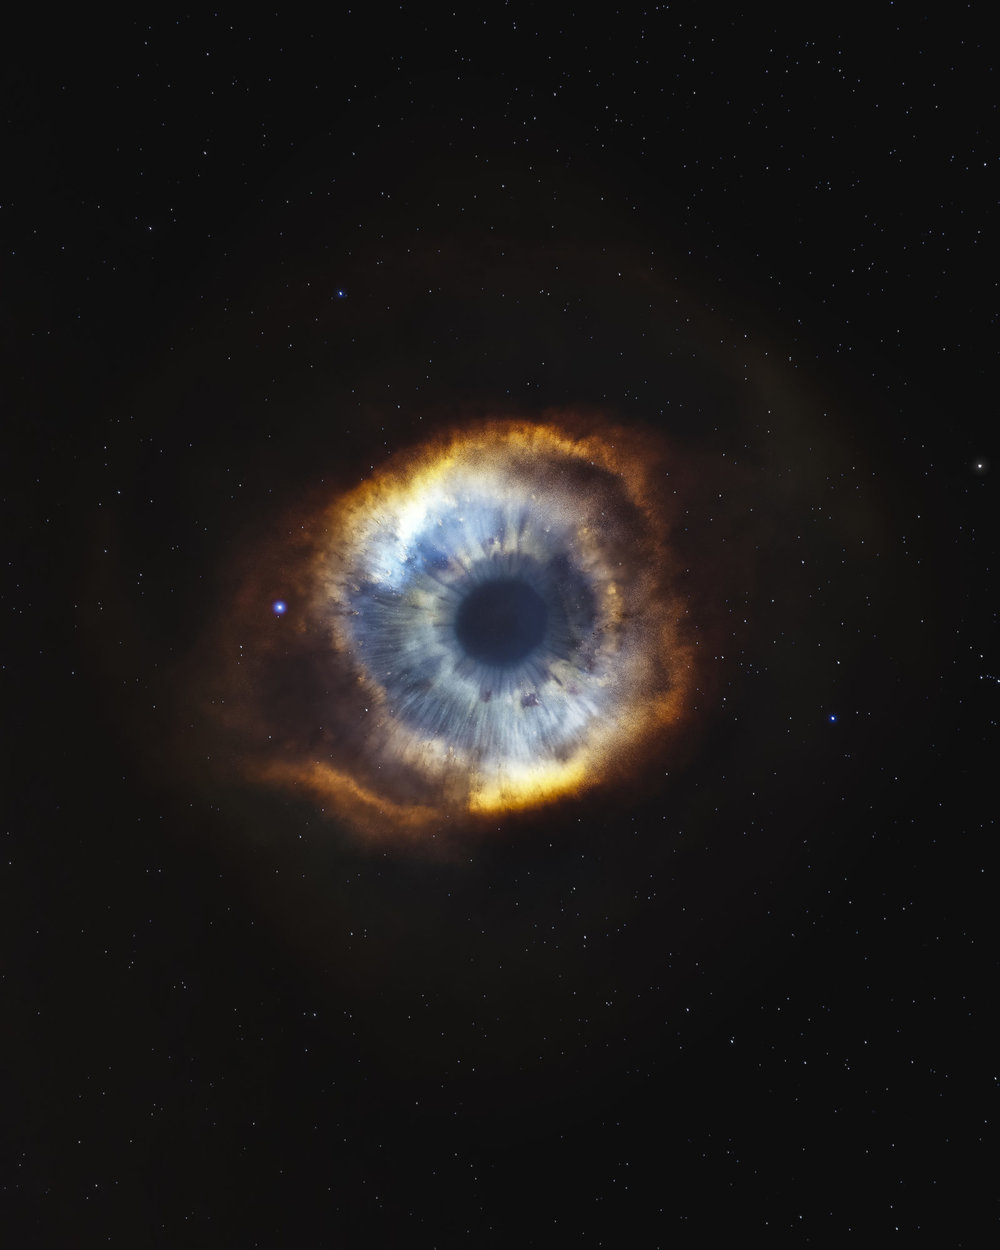 Galaxy-Eye-Kopie-1600x2000.jpg